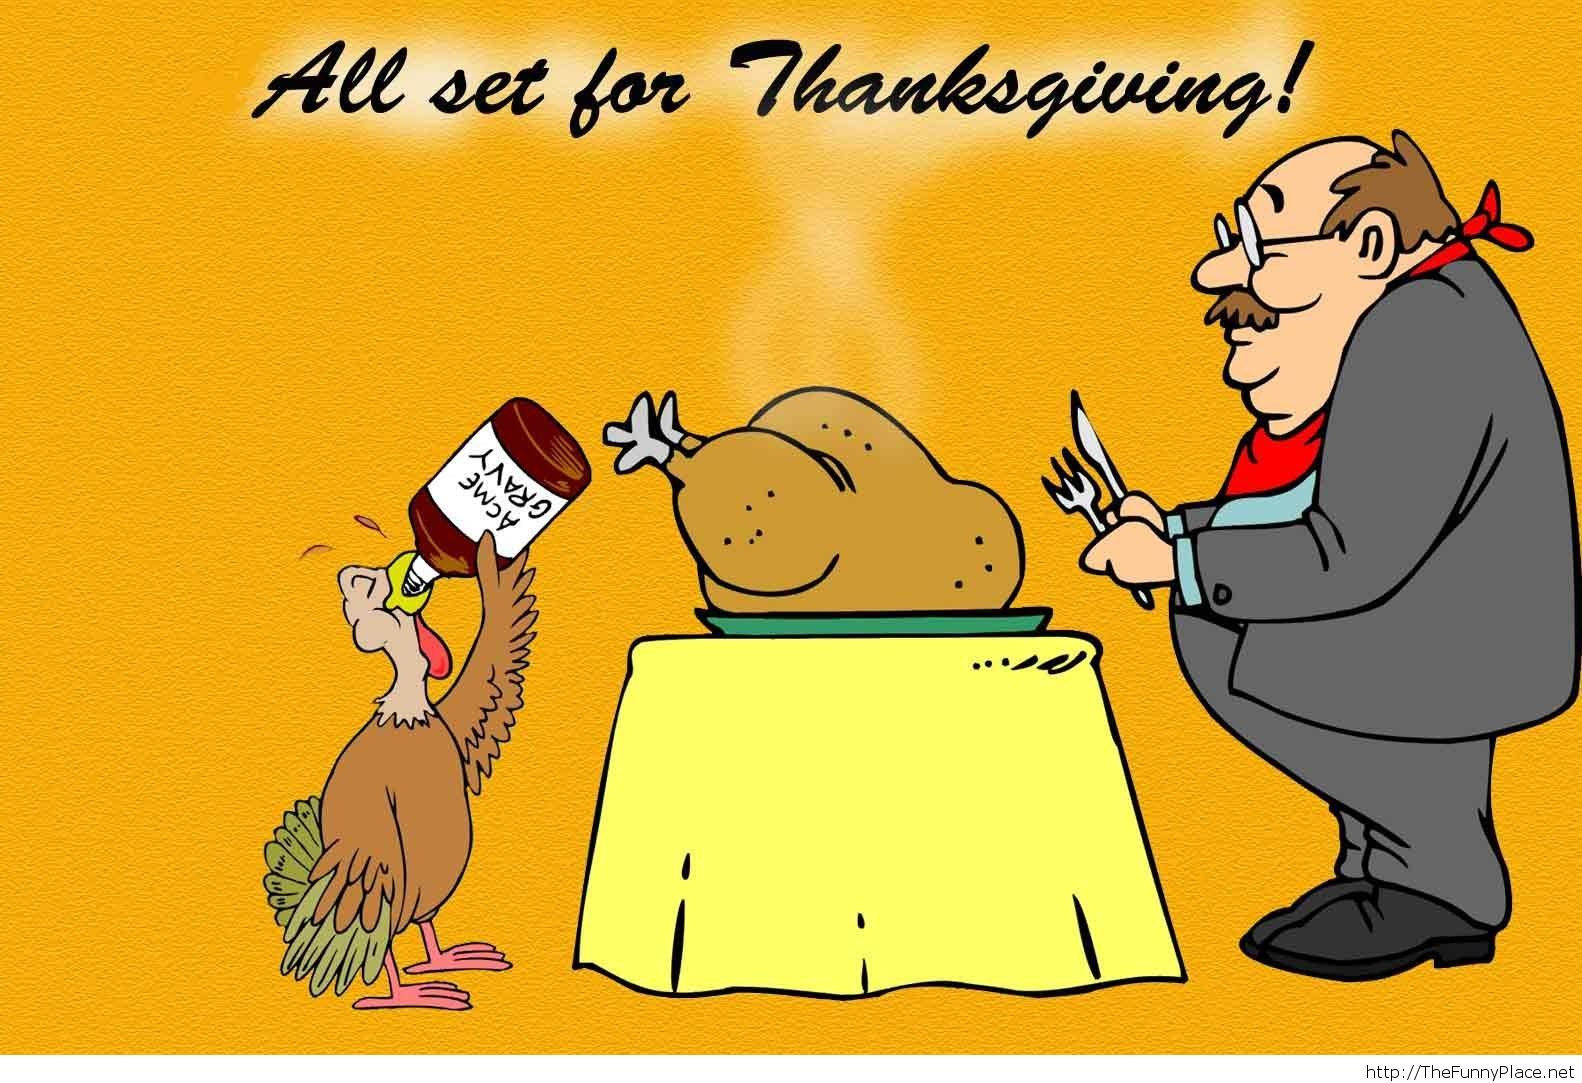 Thanksgiving funny saying